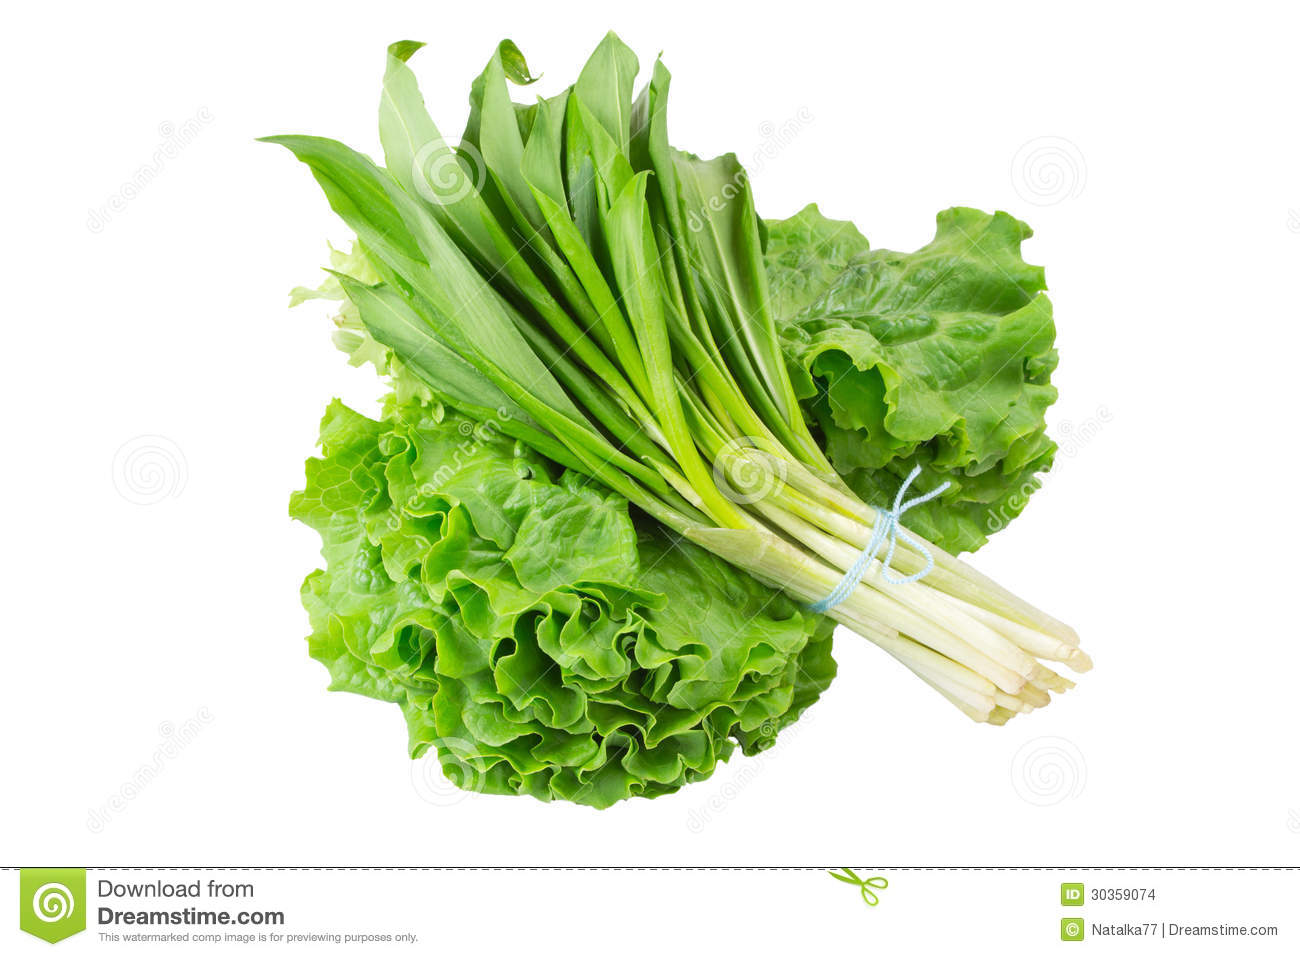 Wild onion and lettuce